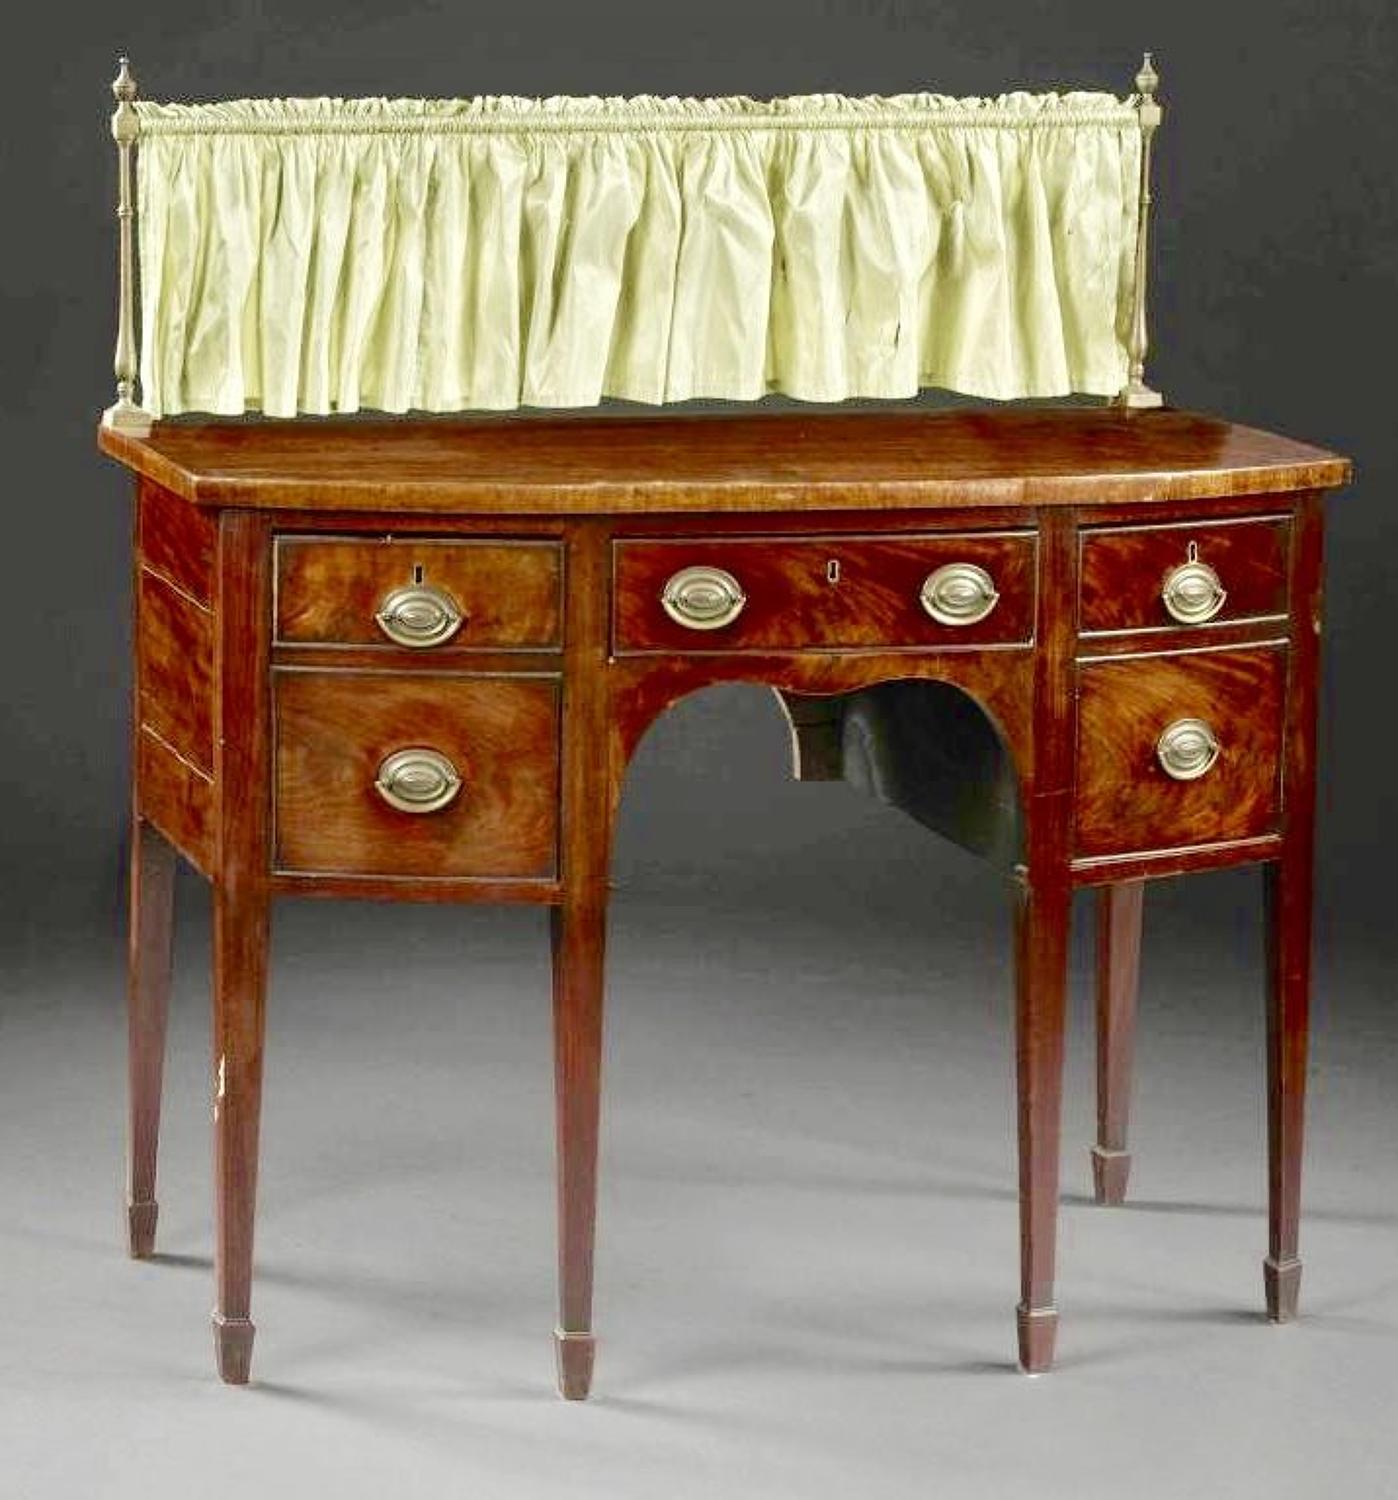 A LATE 18TH CENTURY ENGLISH MAHOGANY SIDEBOARD